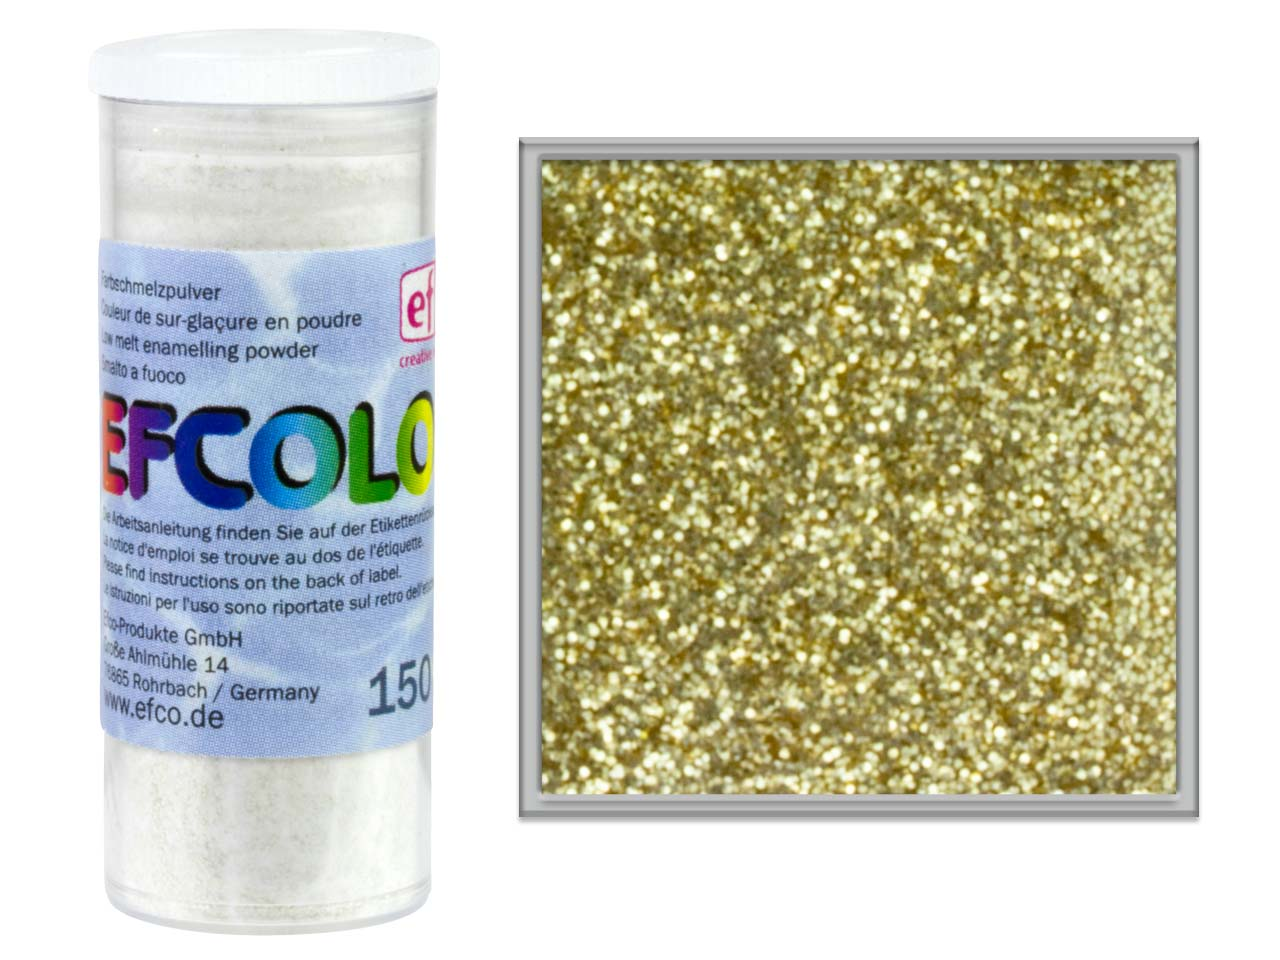 Efcolor Enamel Glitter Gold 10ml